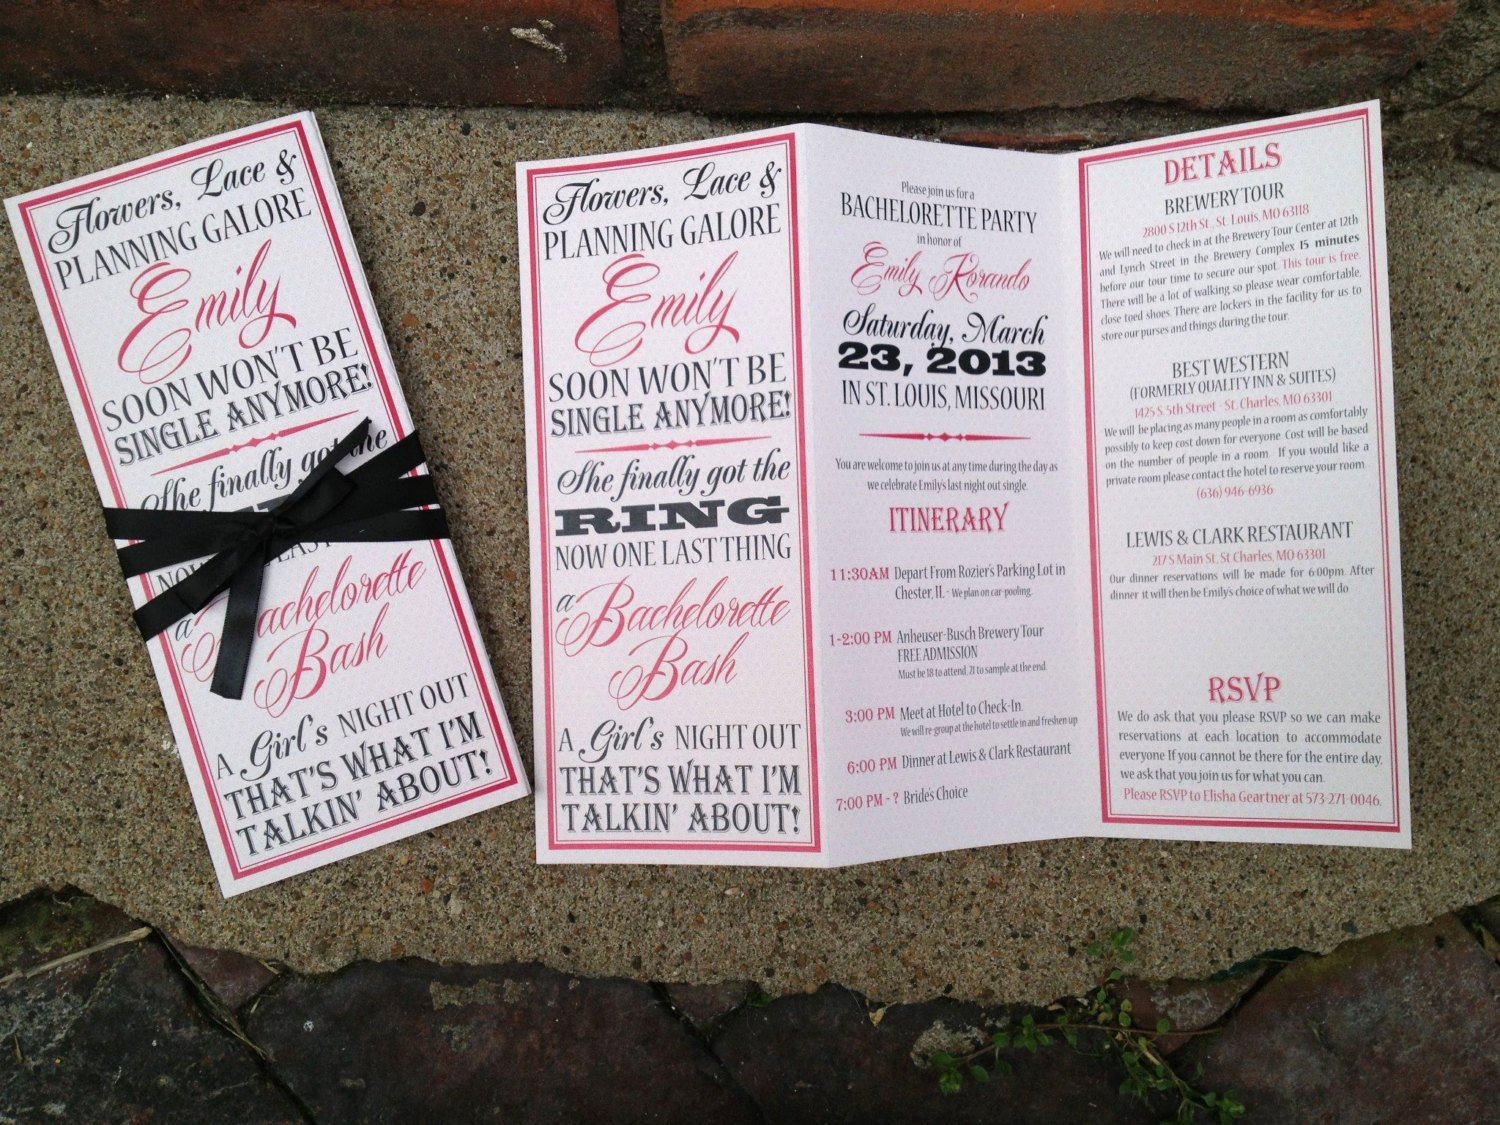 Bachelorette Weekend Itinerary Template Elegant Bachelorette Party Invite Trifolded Itinerary